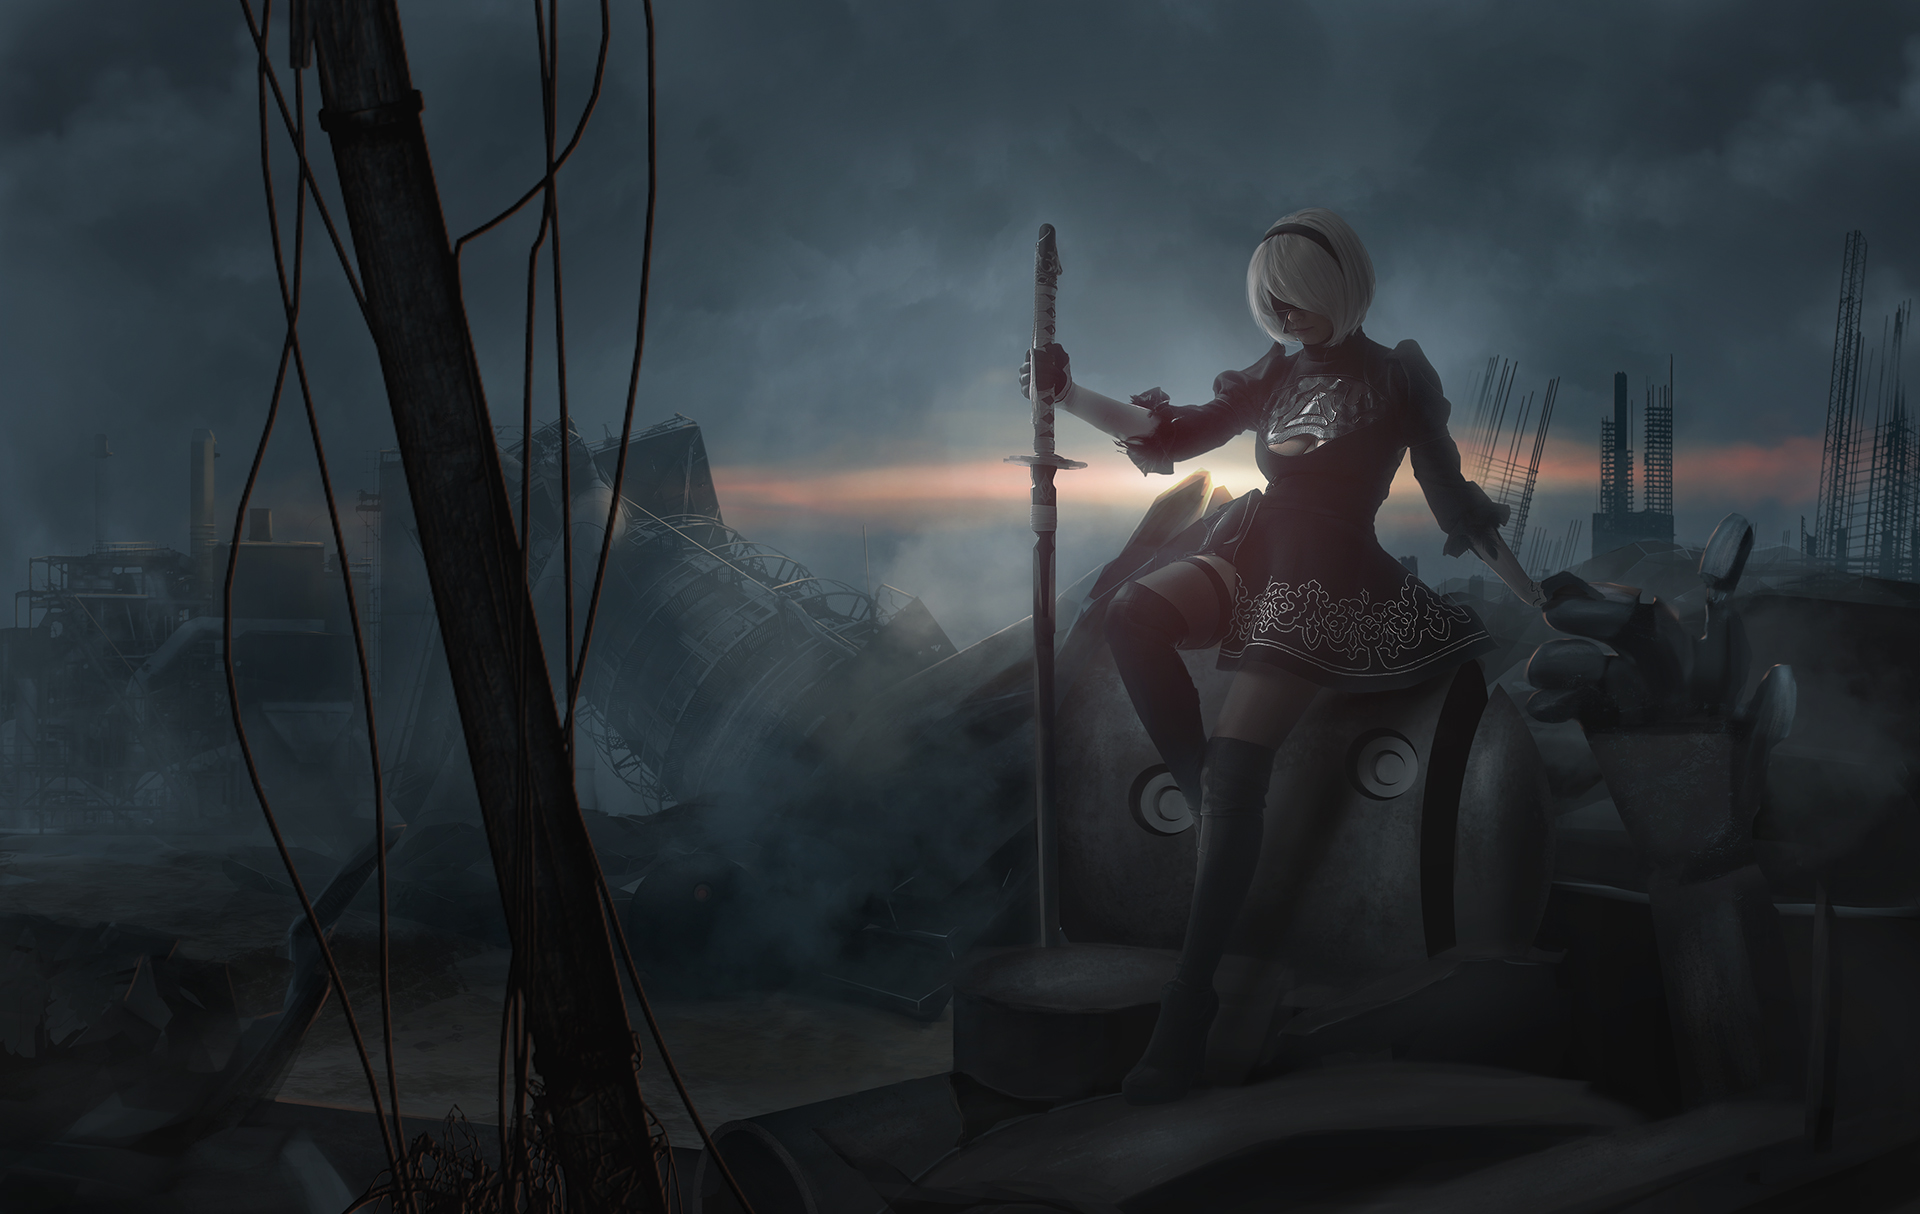 Nier Automata Hd Hd Games 4k Wallpapers Images Backgrounds